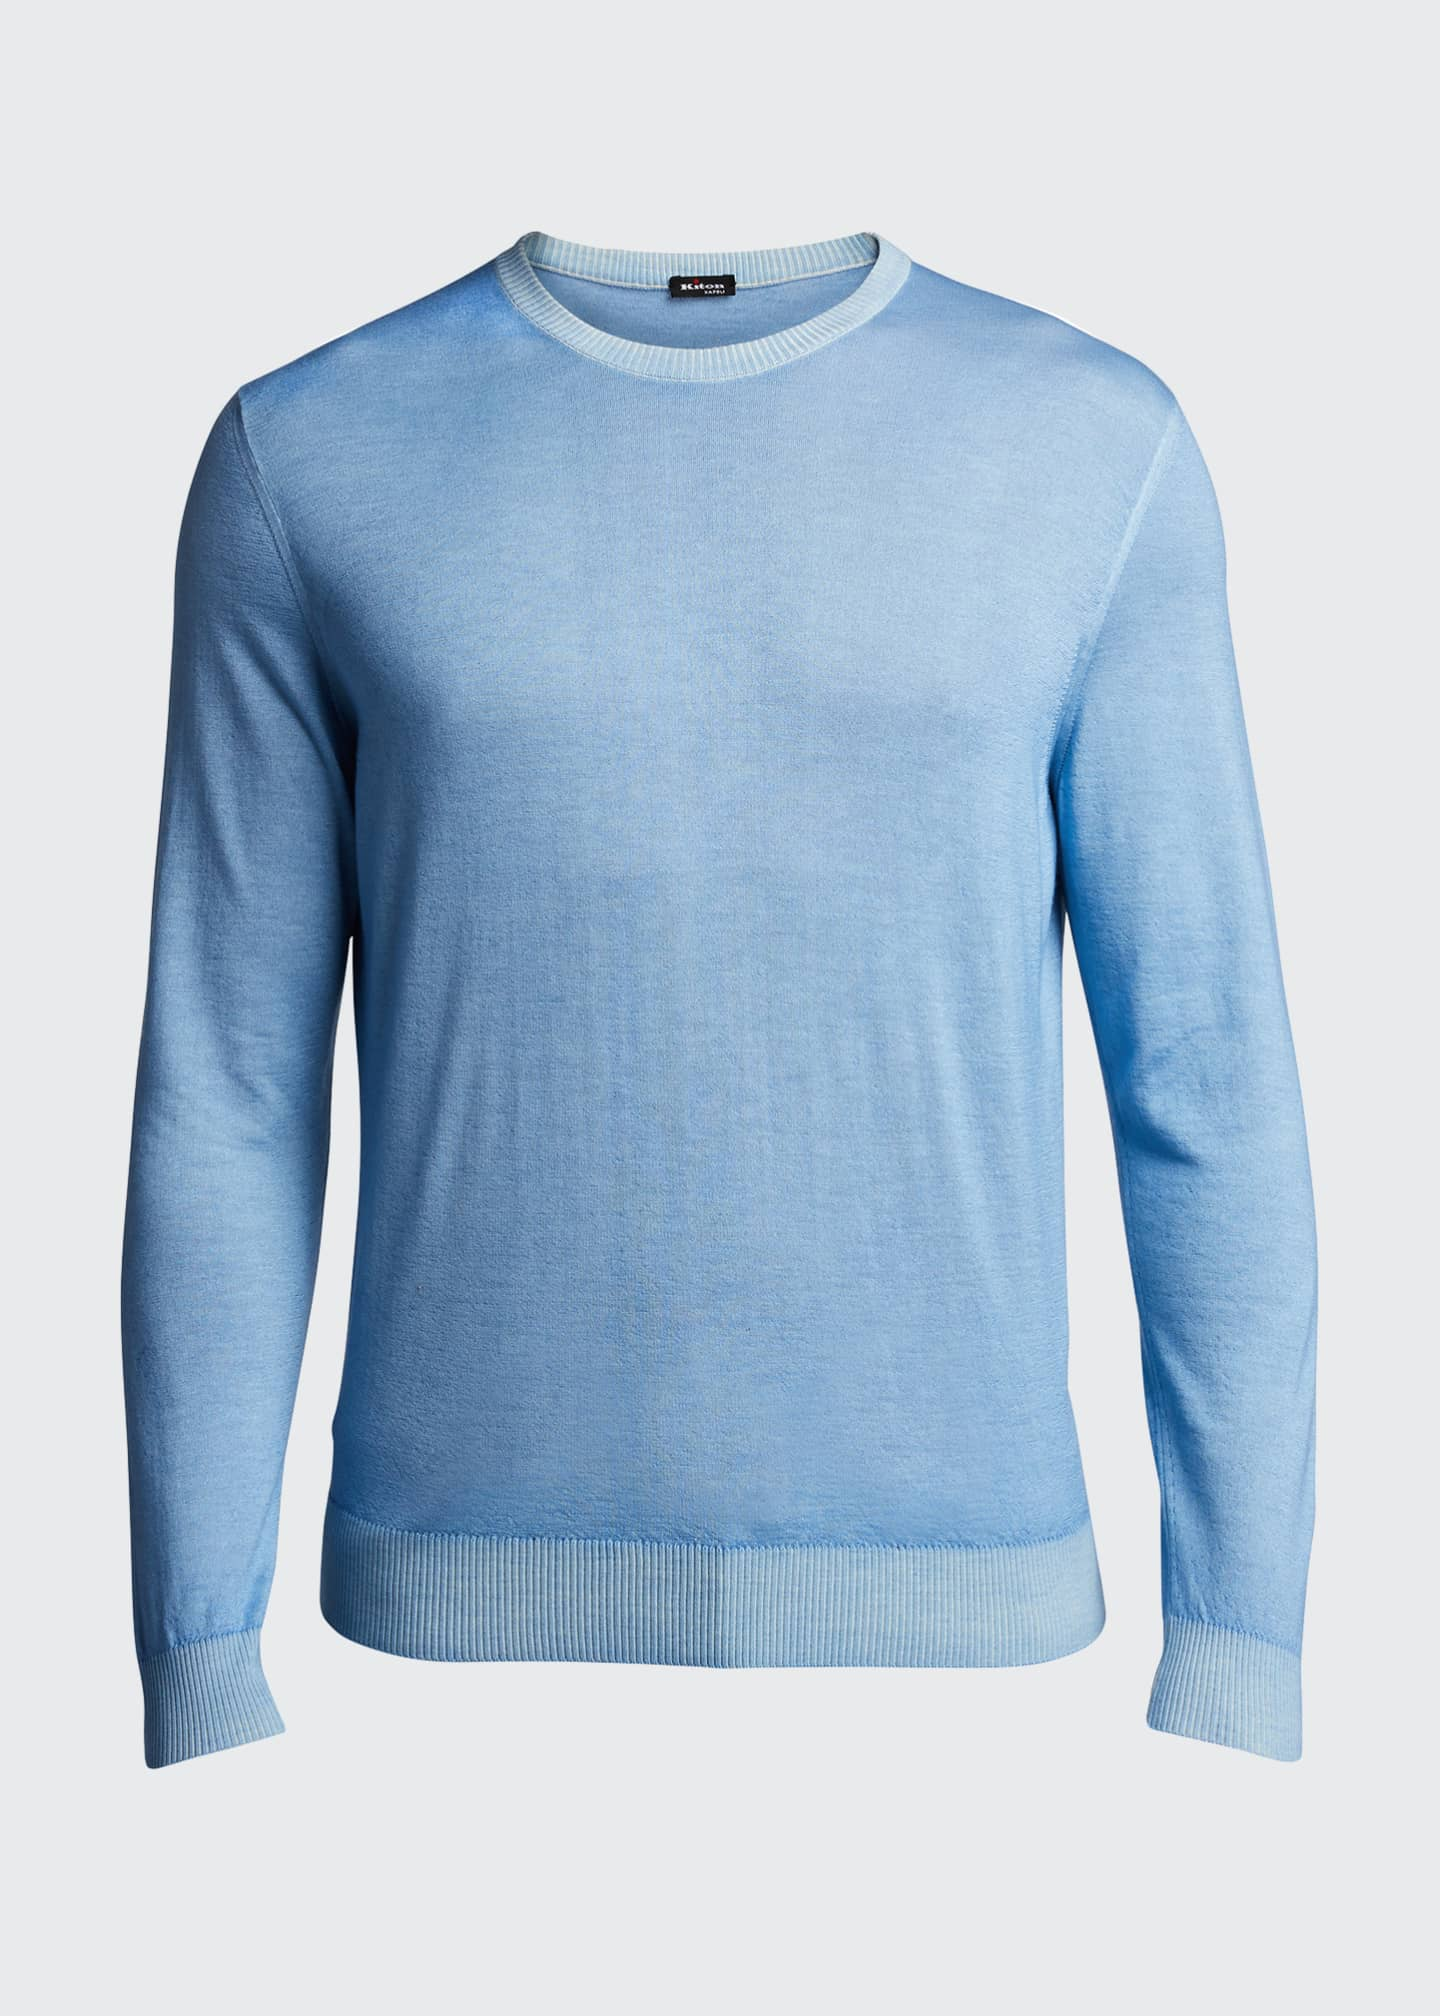 Image 5 of 5: Men's Washed Cashmere-Cotton Sweater